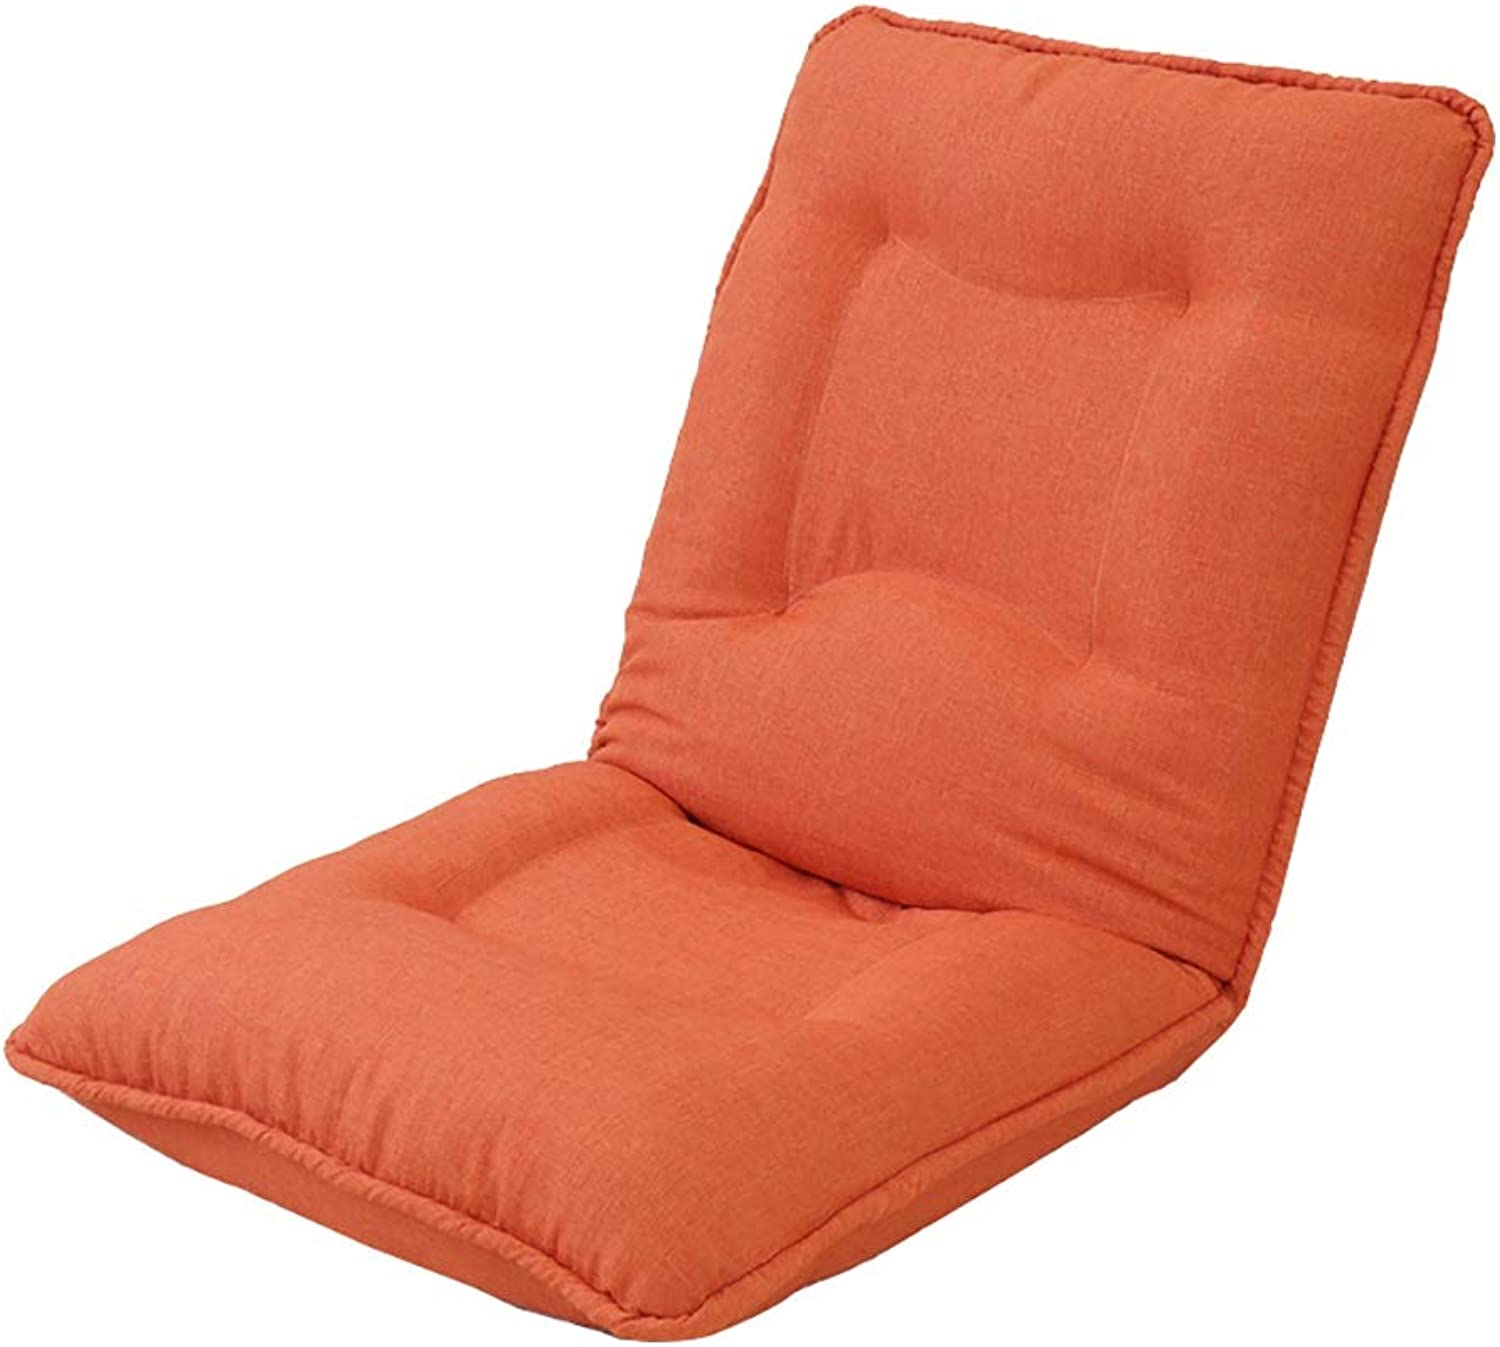 Lazy Couch, Foldable Single Small Sofa Bay Window Chair Foldable (color   orange)